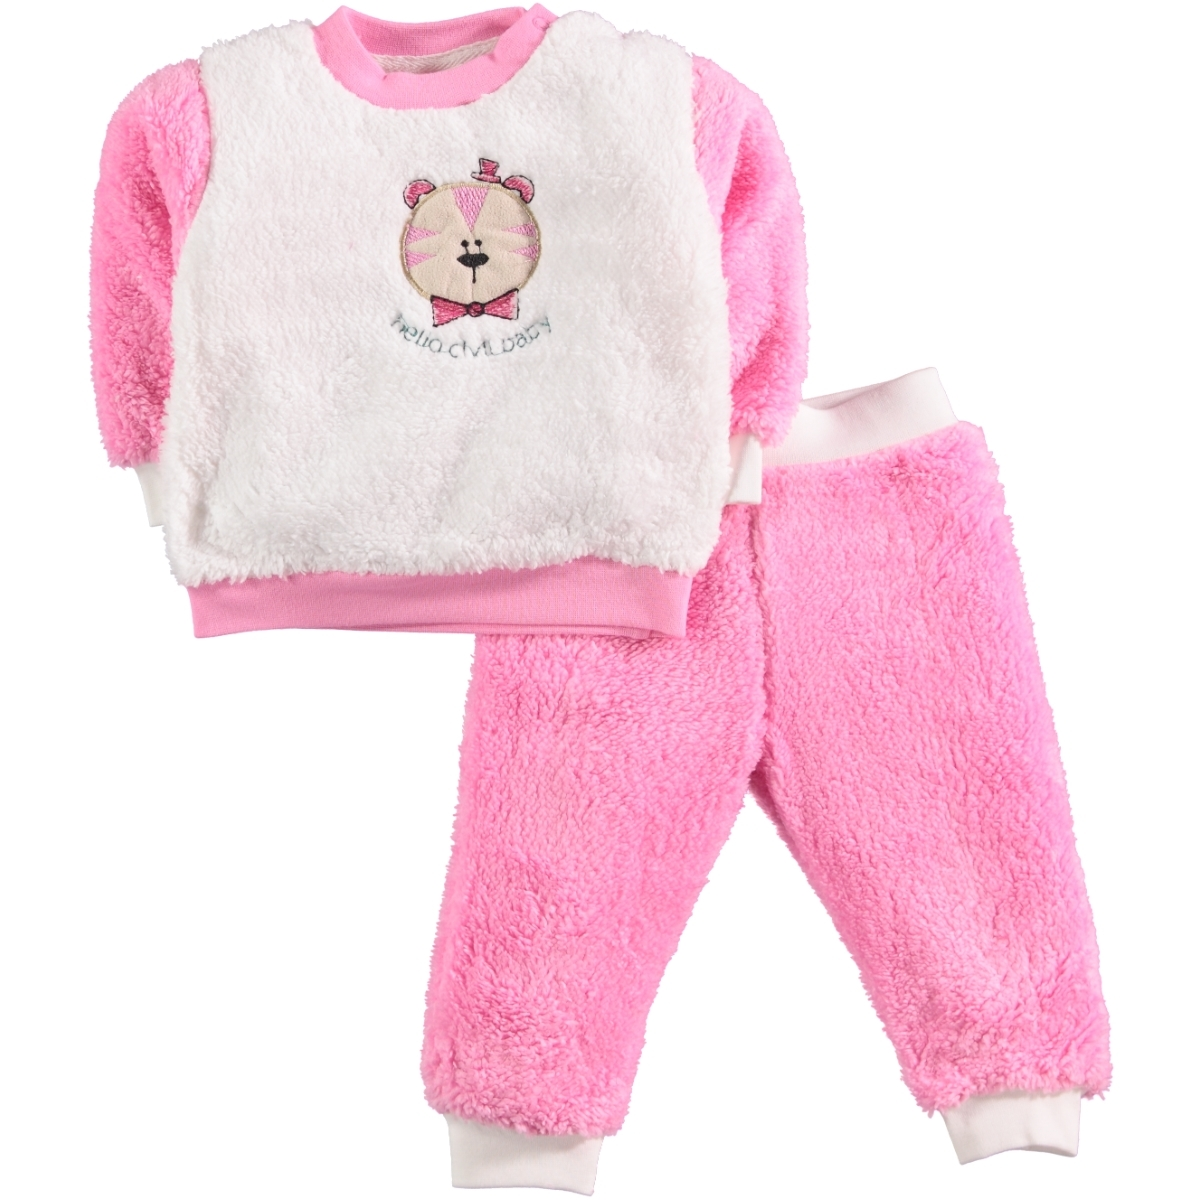 Civil Baby Team Fuchsia Baby Girl 3-9 Months